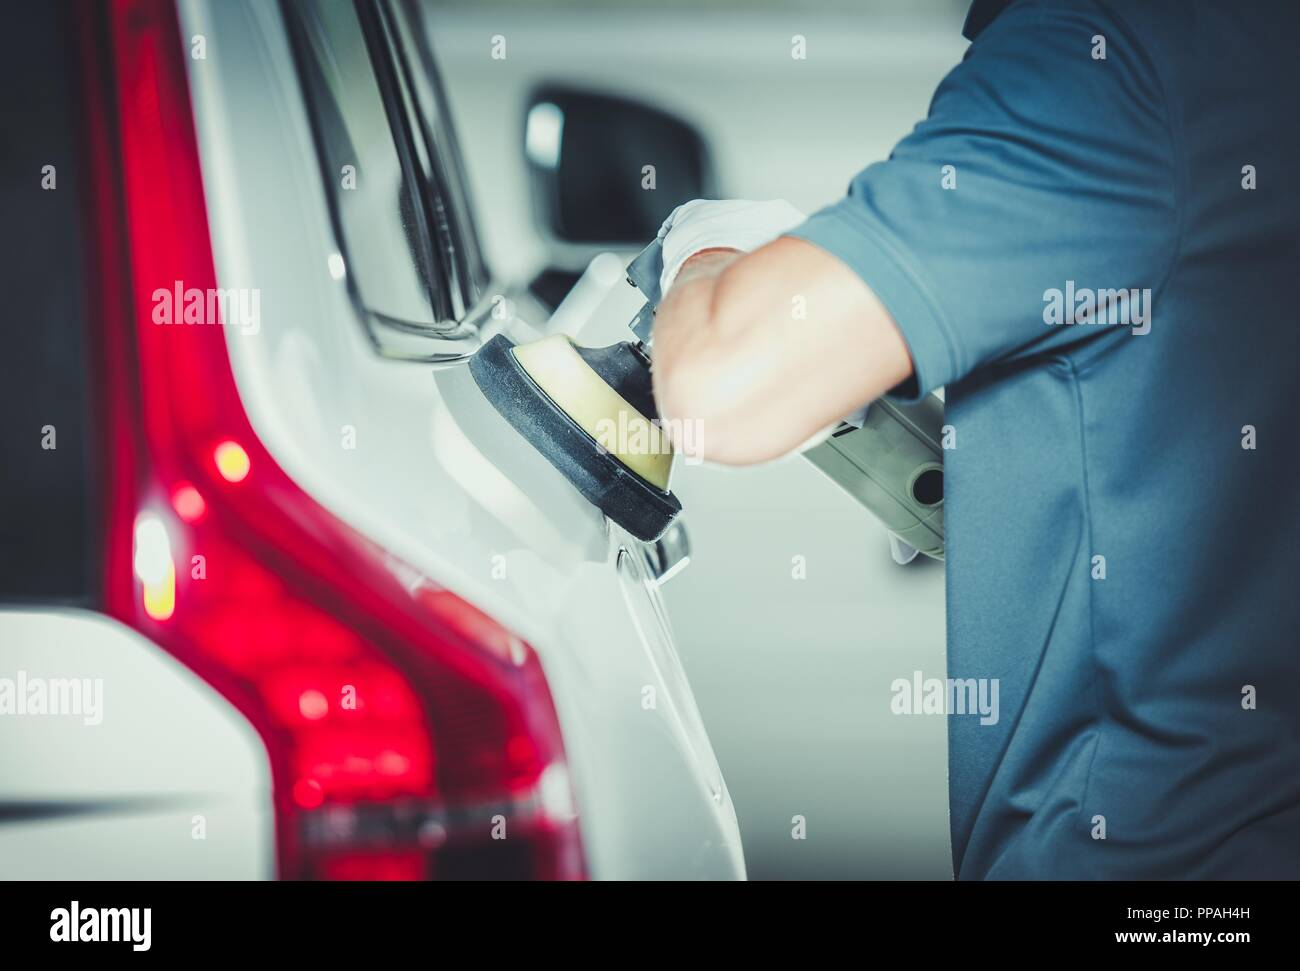 Professional Vehicle Buffing by Caucasian Car Detailing Service Worker. Removing Scratches From the Car Body Paint. Auto Polishing. - Stock Image